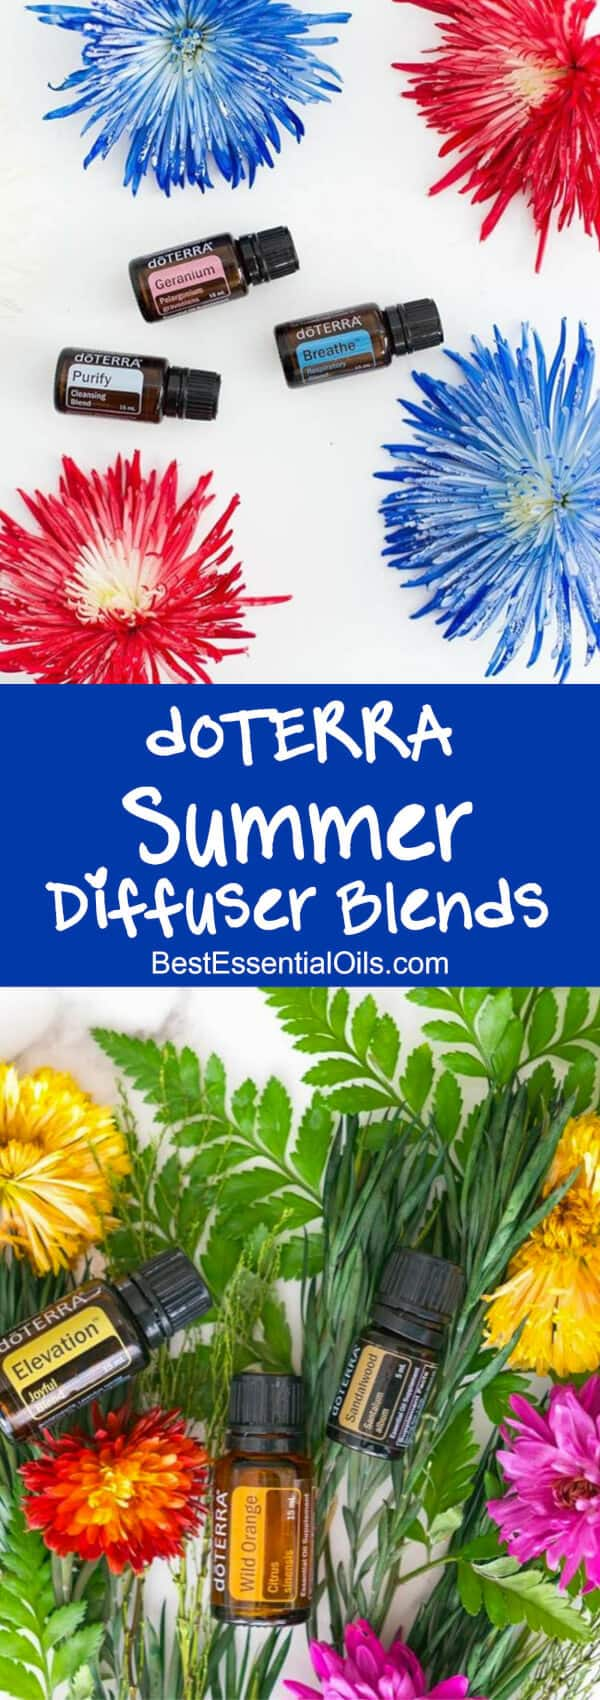 Summer doTERRA Diffuser Blends